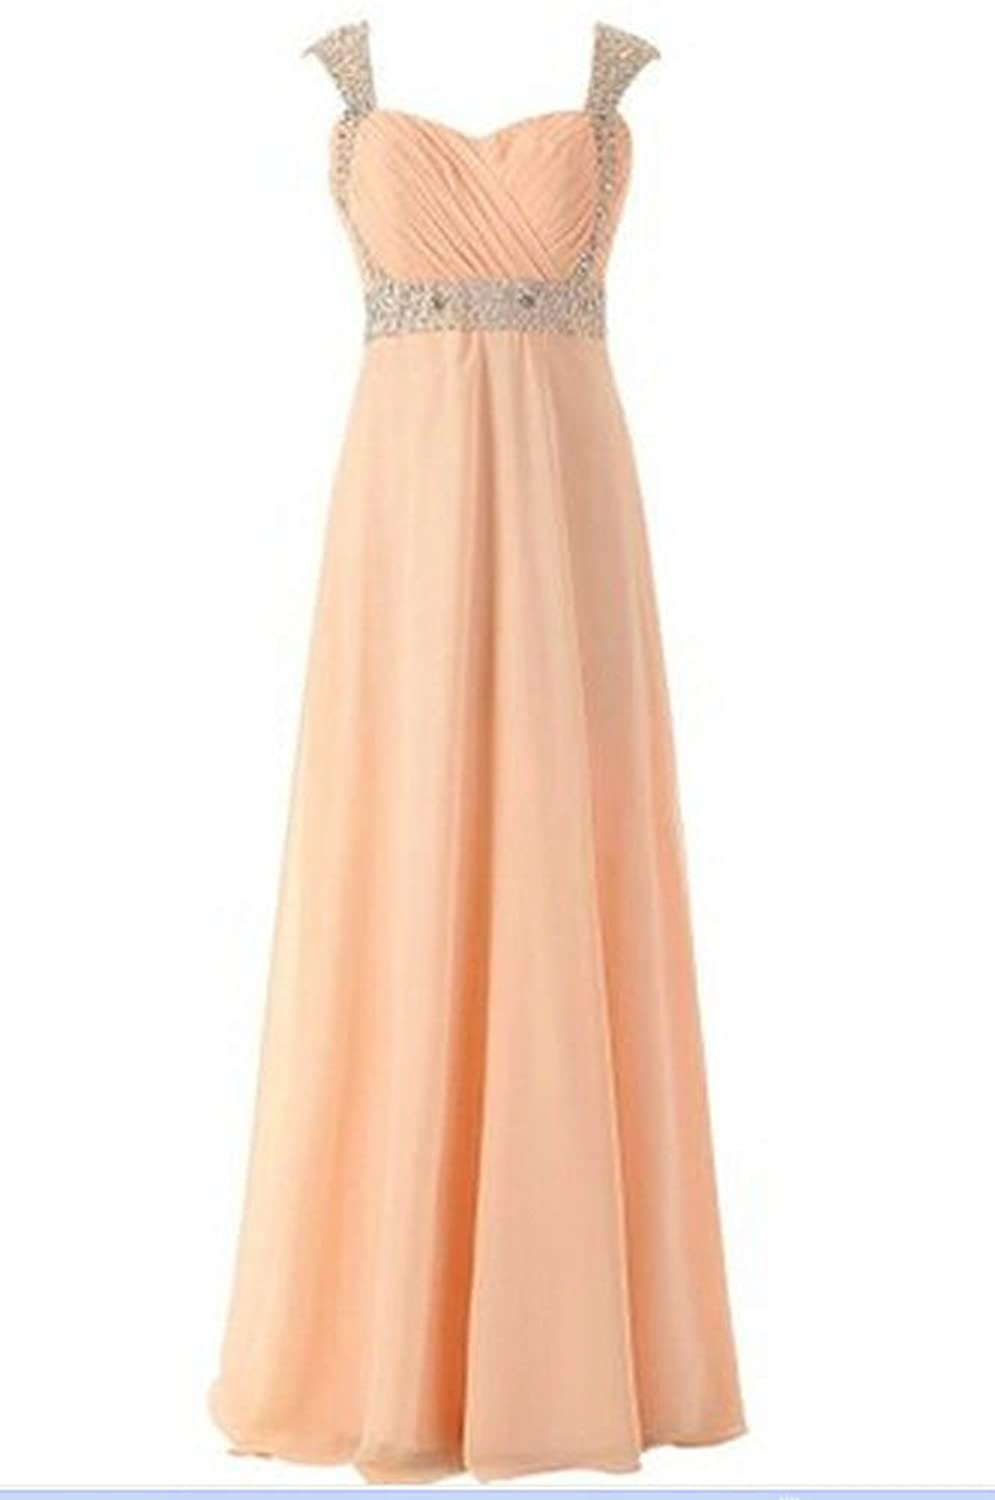 Miranda Sleeveless Lace up Back in Chiffon Prom Gown Evening Gown Homecoming Dress